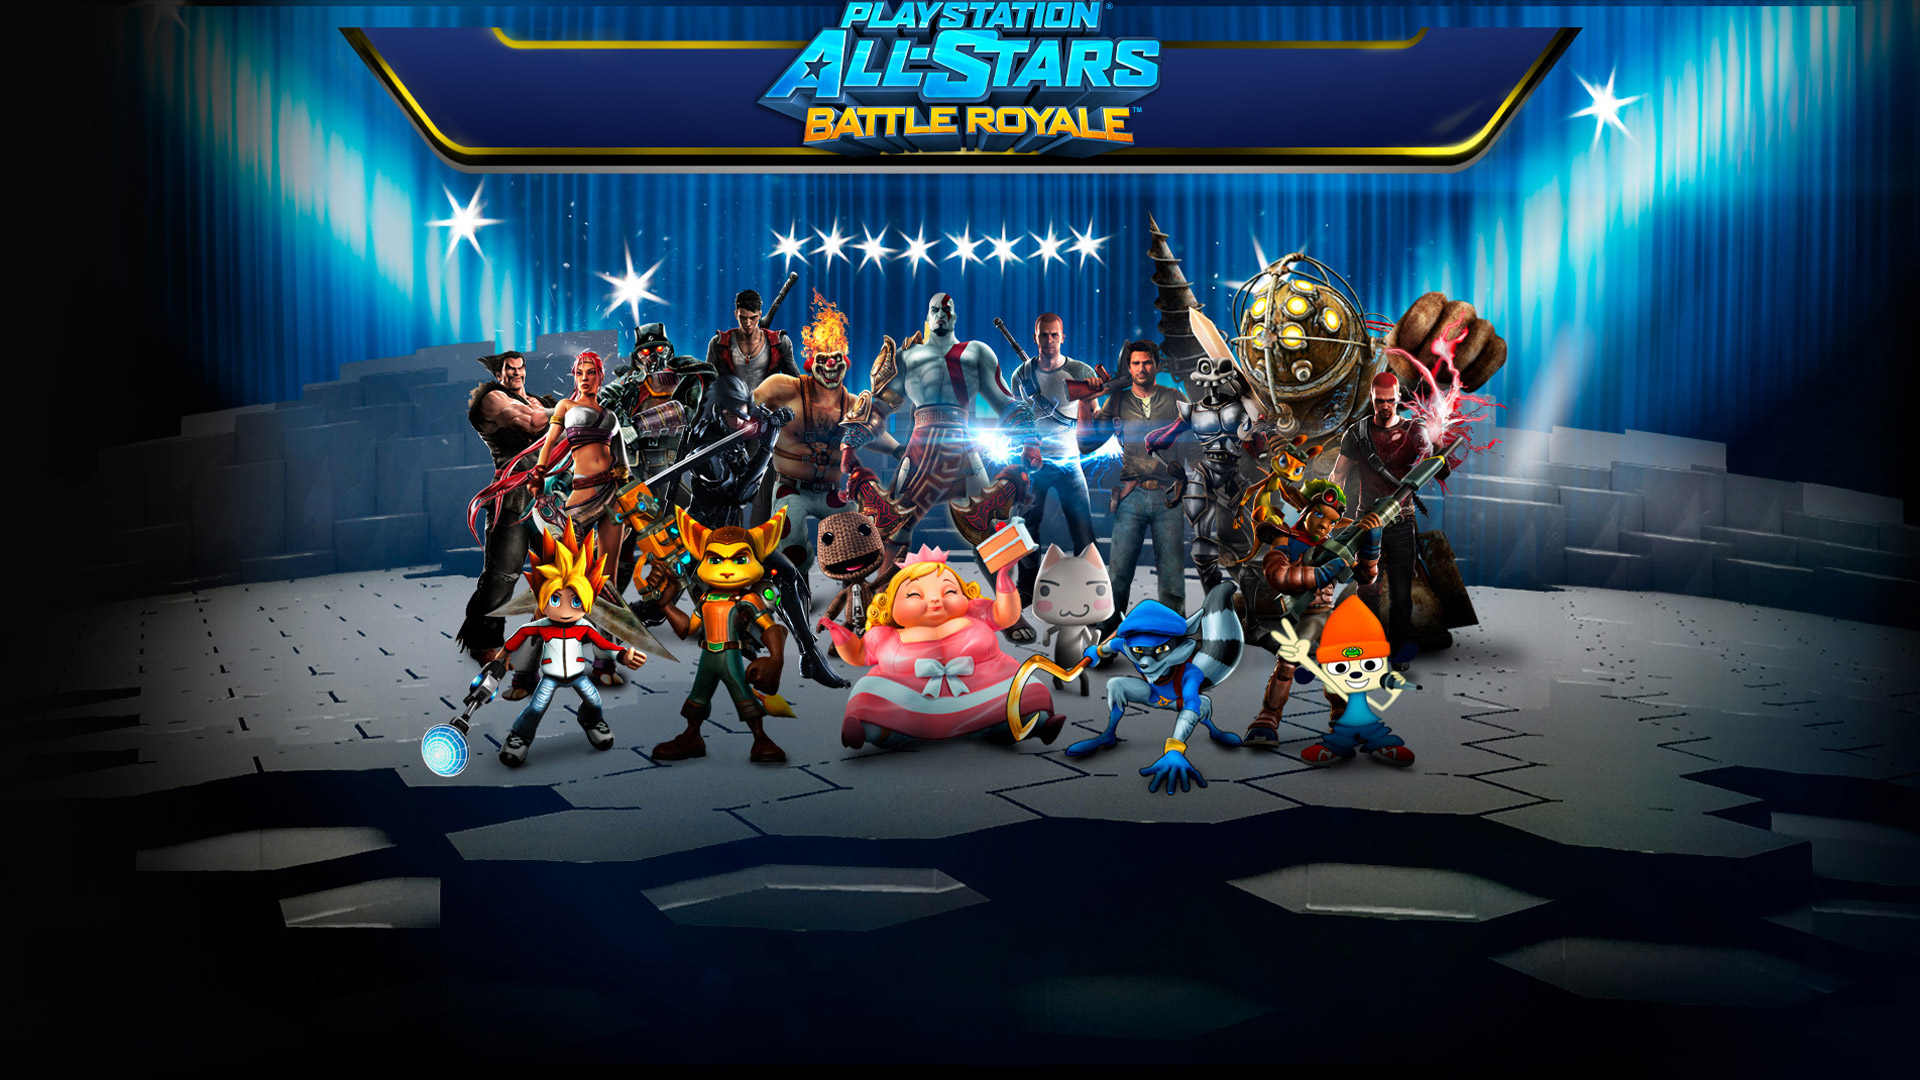 Free PlayStation All-Stars Battle Royale Wallpaper in 1920x1080